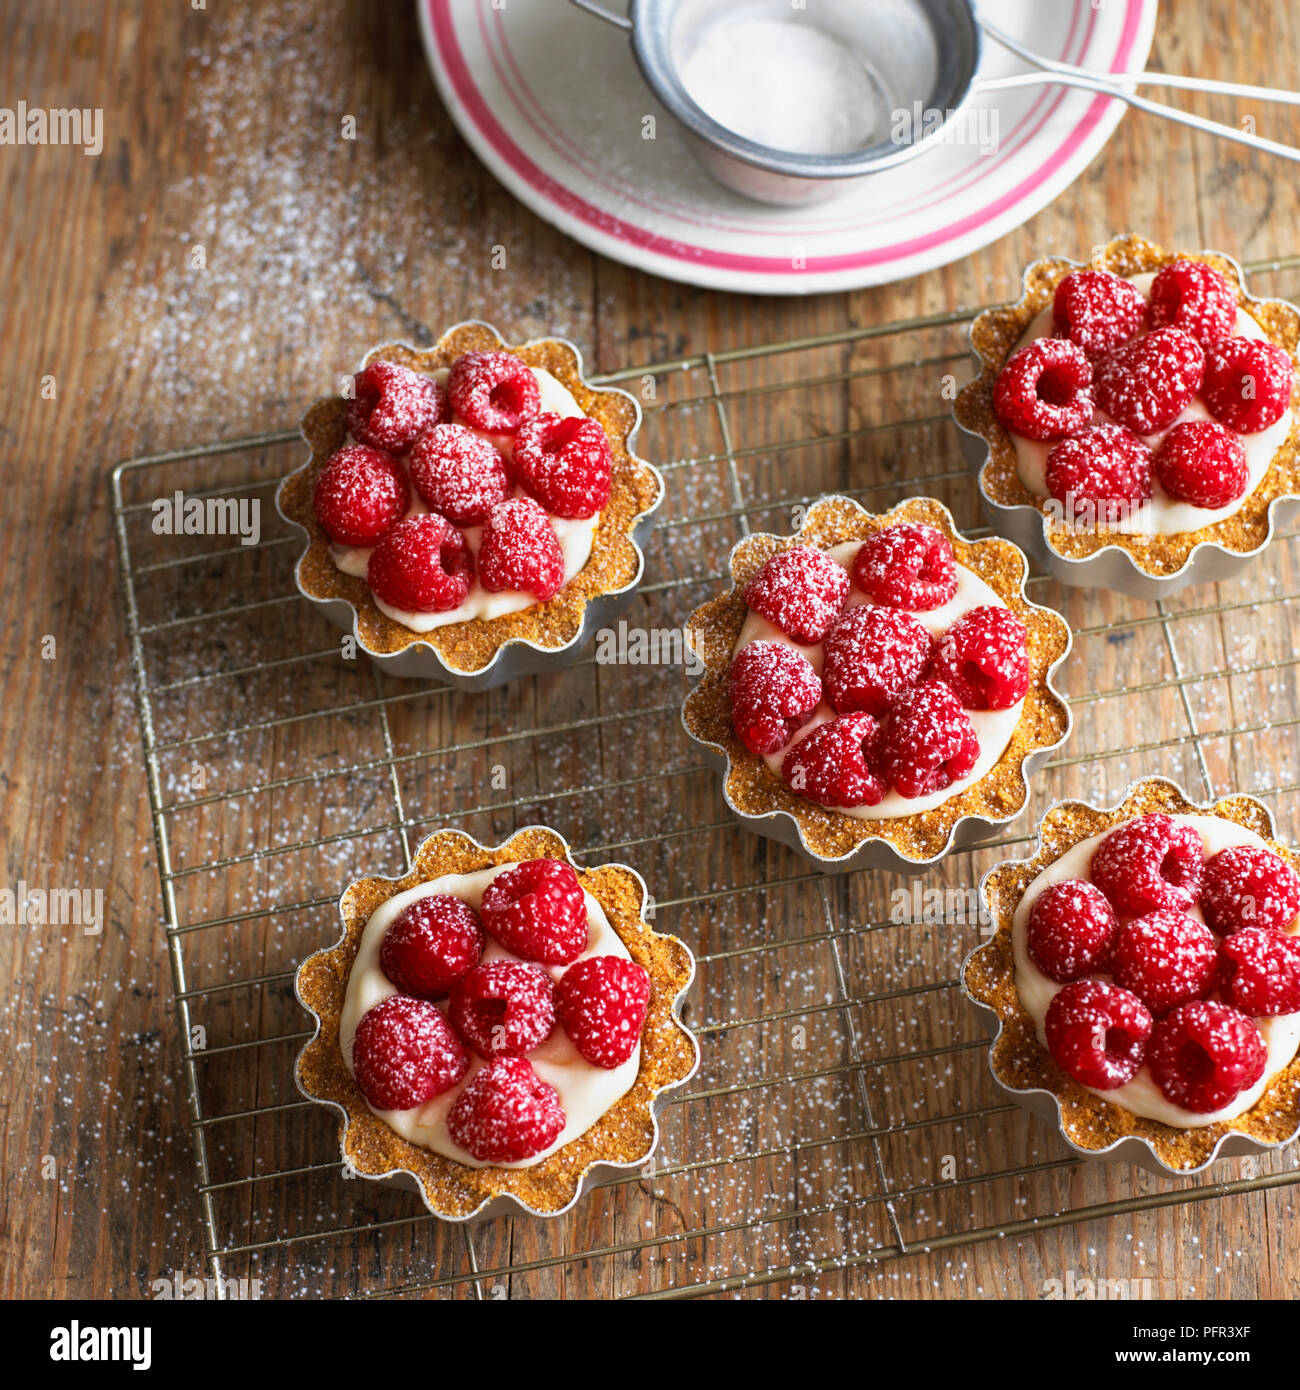 Raspberry tartlets with cream filling and dusted with icing sugar, on wire cooling rack - Stock Image